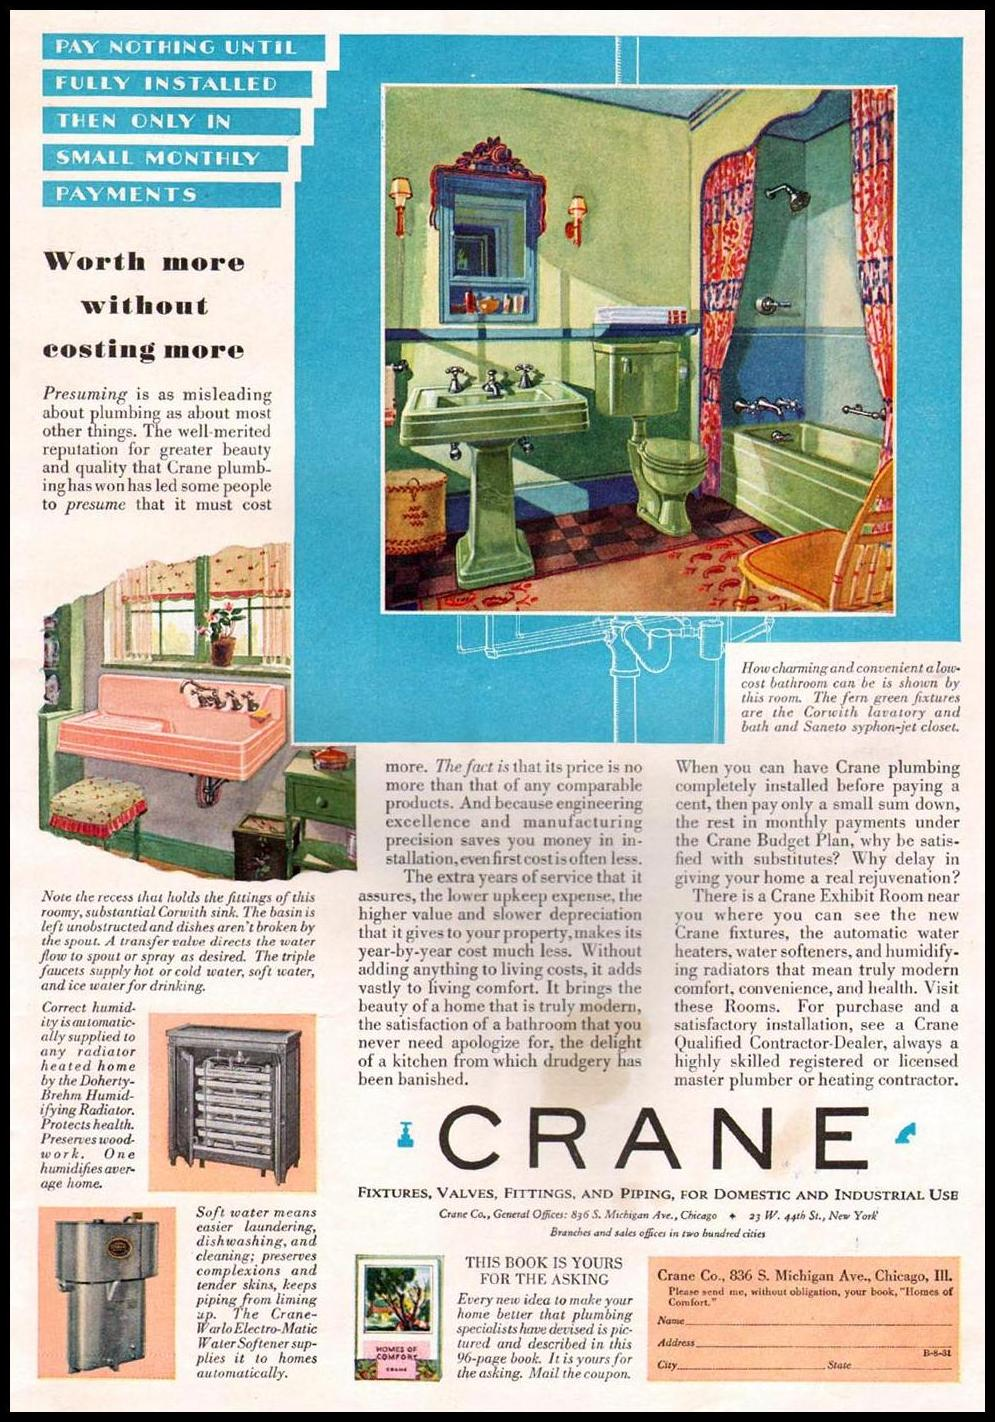 CRANE BATHROOM FIXTURES BETTER HOMES AND GARDENS 08/01/1931 INSIDE BACK